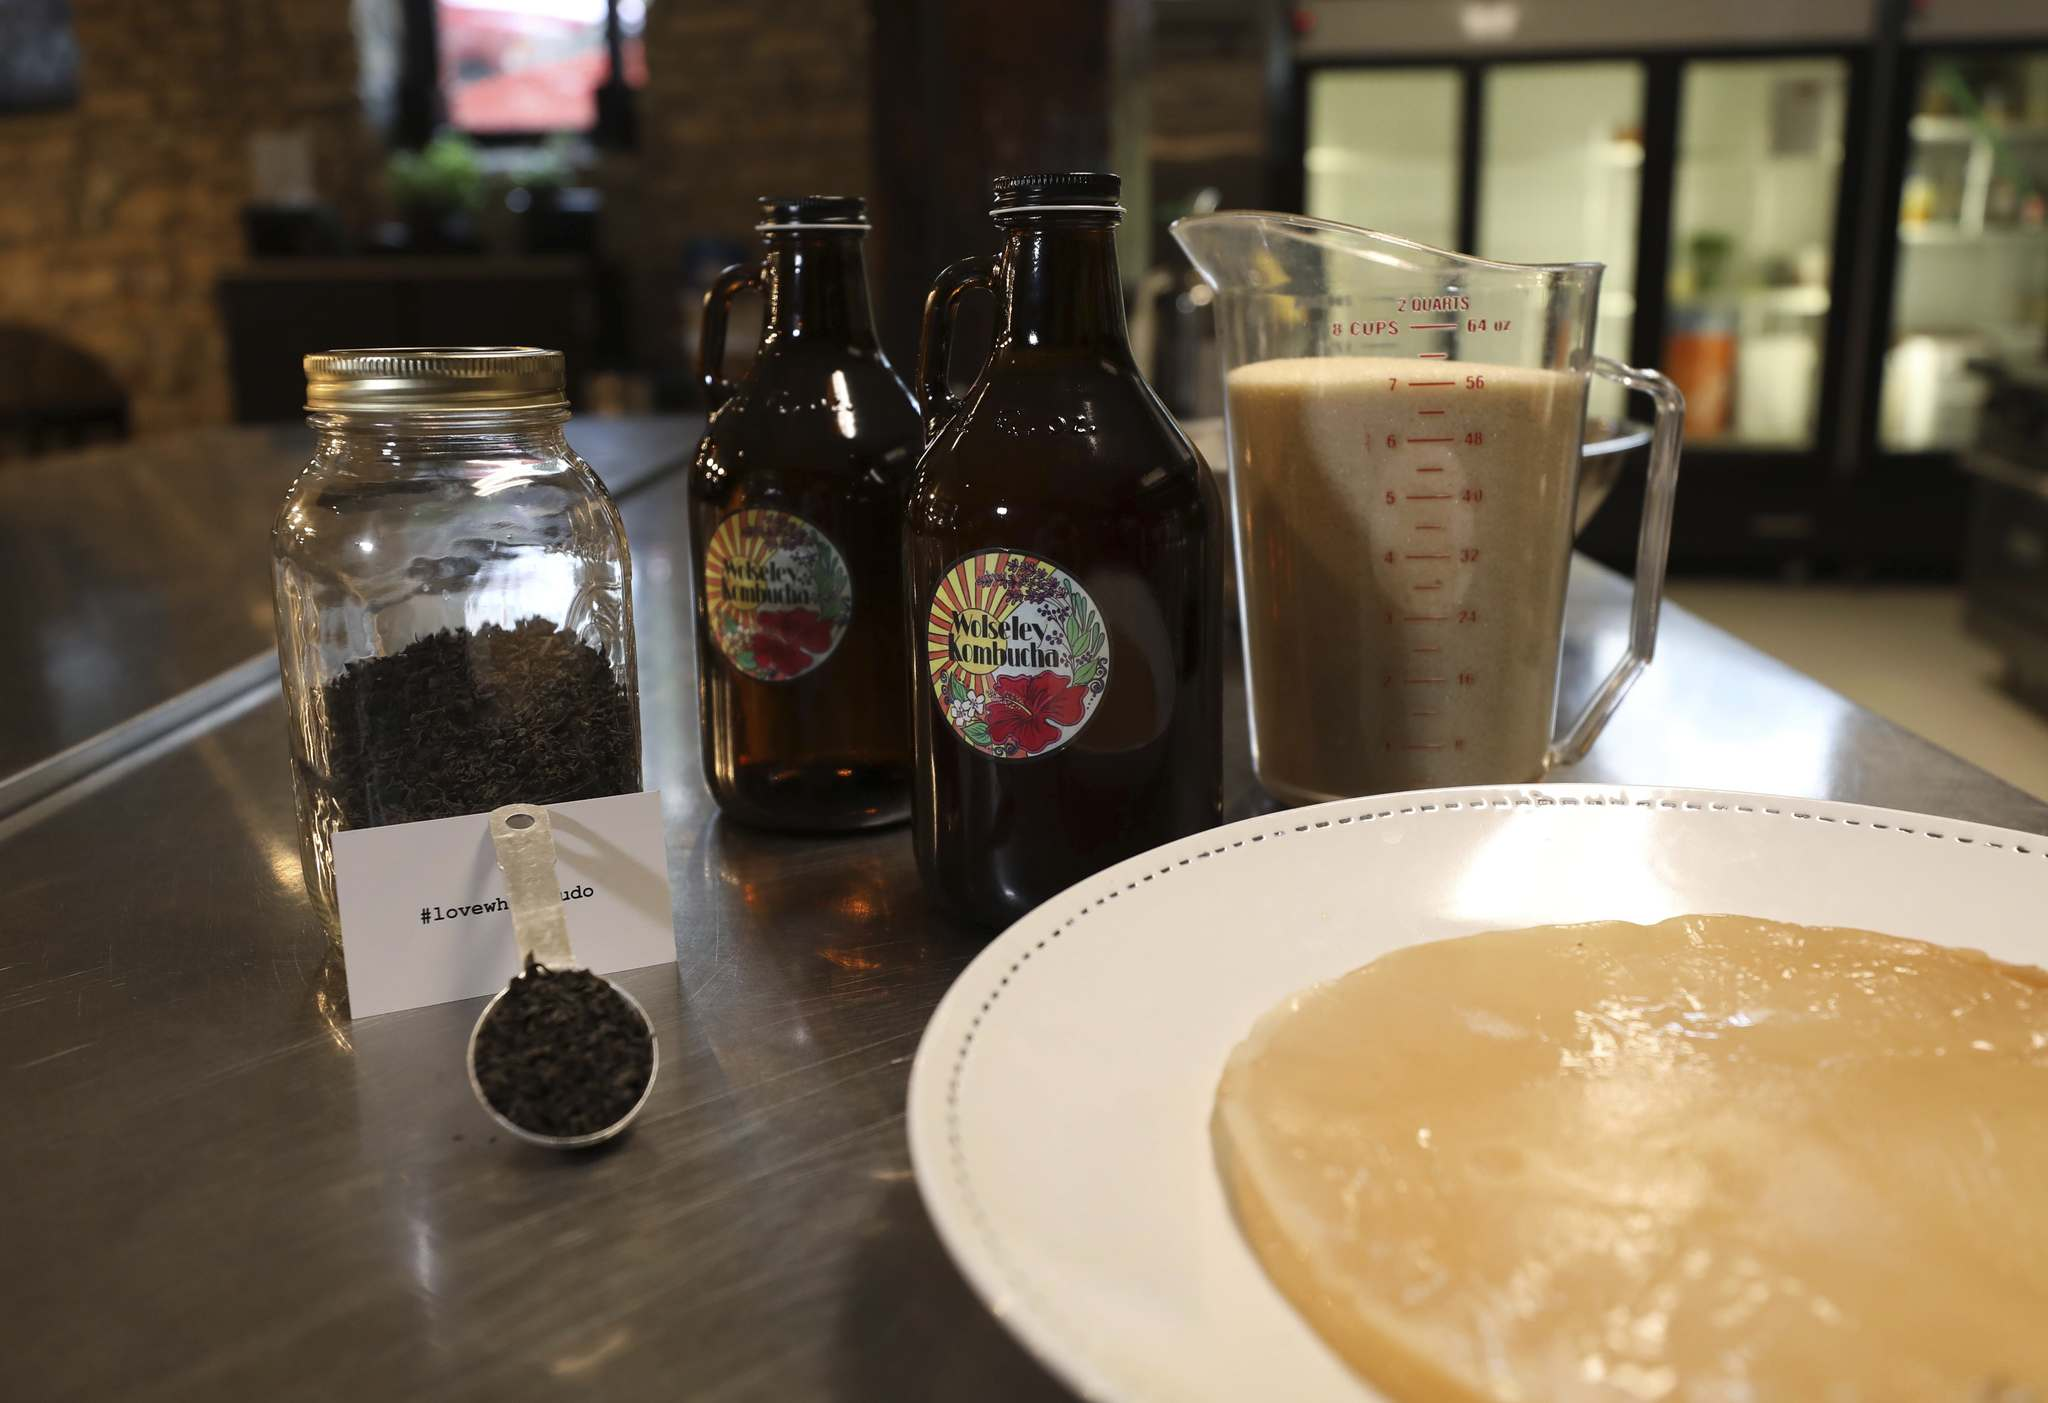 Some of the ingredients that go into making kombucha are: tea, SCOBY (gooey, cream coloured blob for the fermentation) and cane sugar, just to name a few.</p></p>